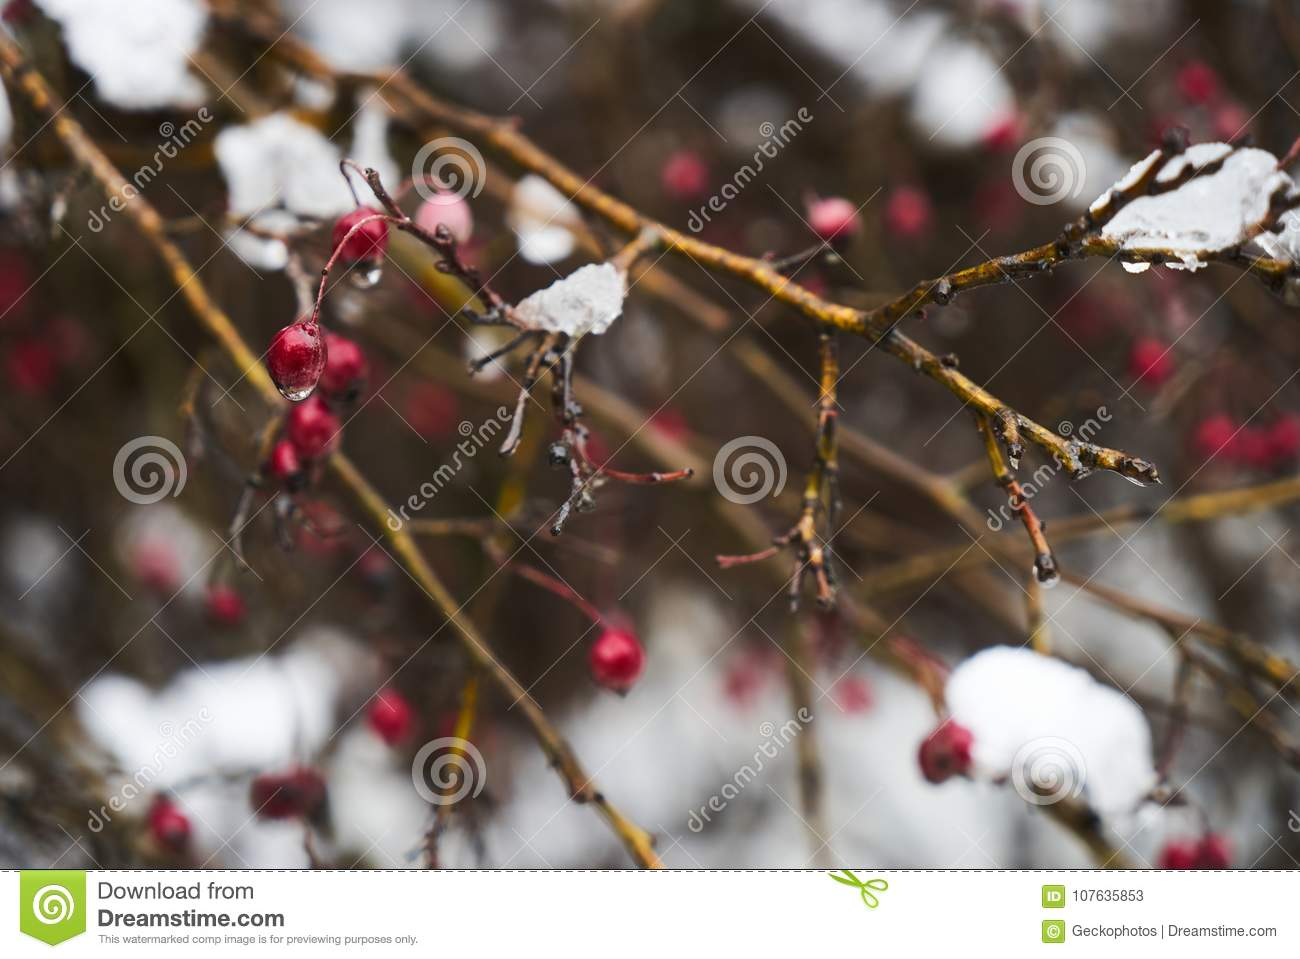 Barberry Bushes With Red Berries In Winter Under The Snow Stock